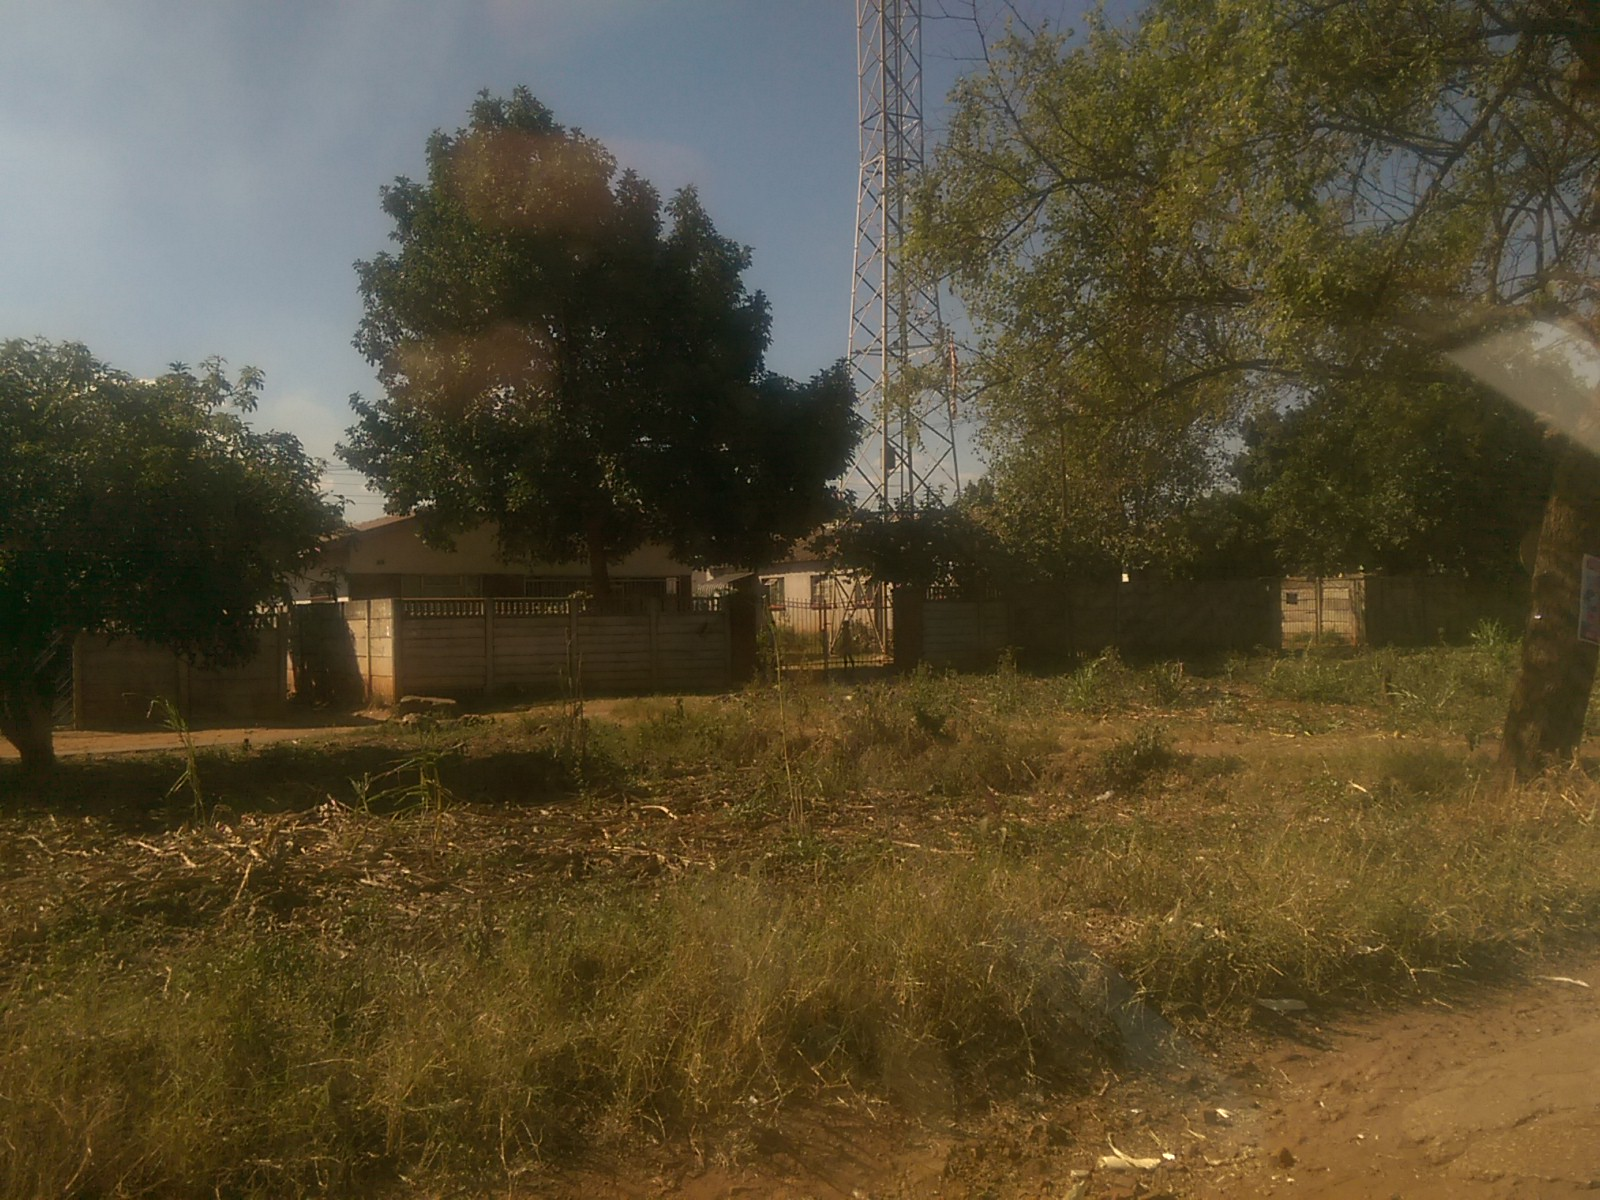 Scrubby grass and trees around small houses at the roadside